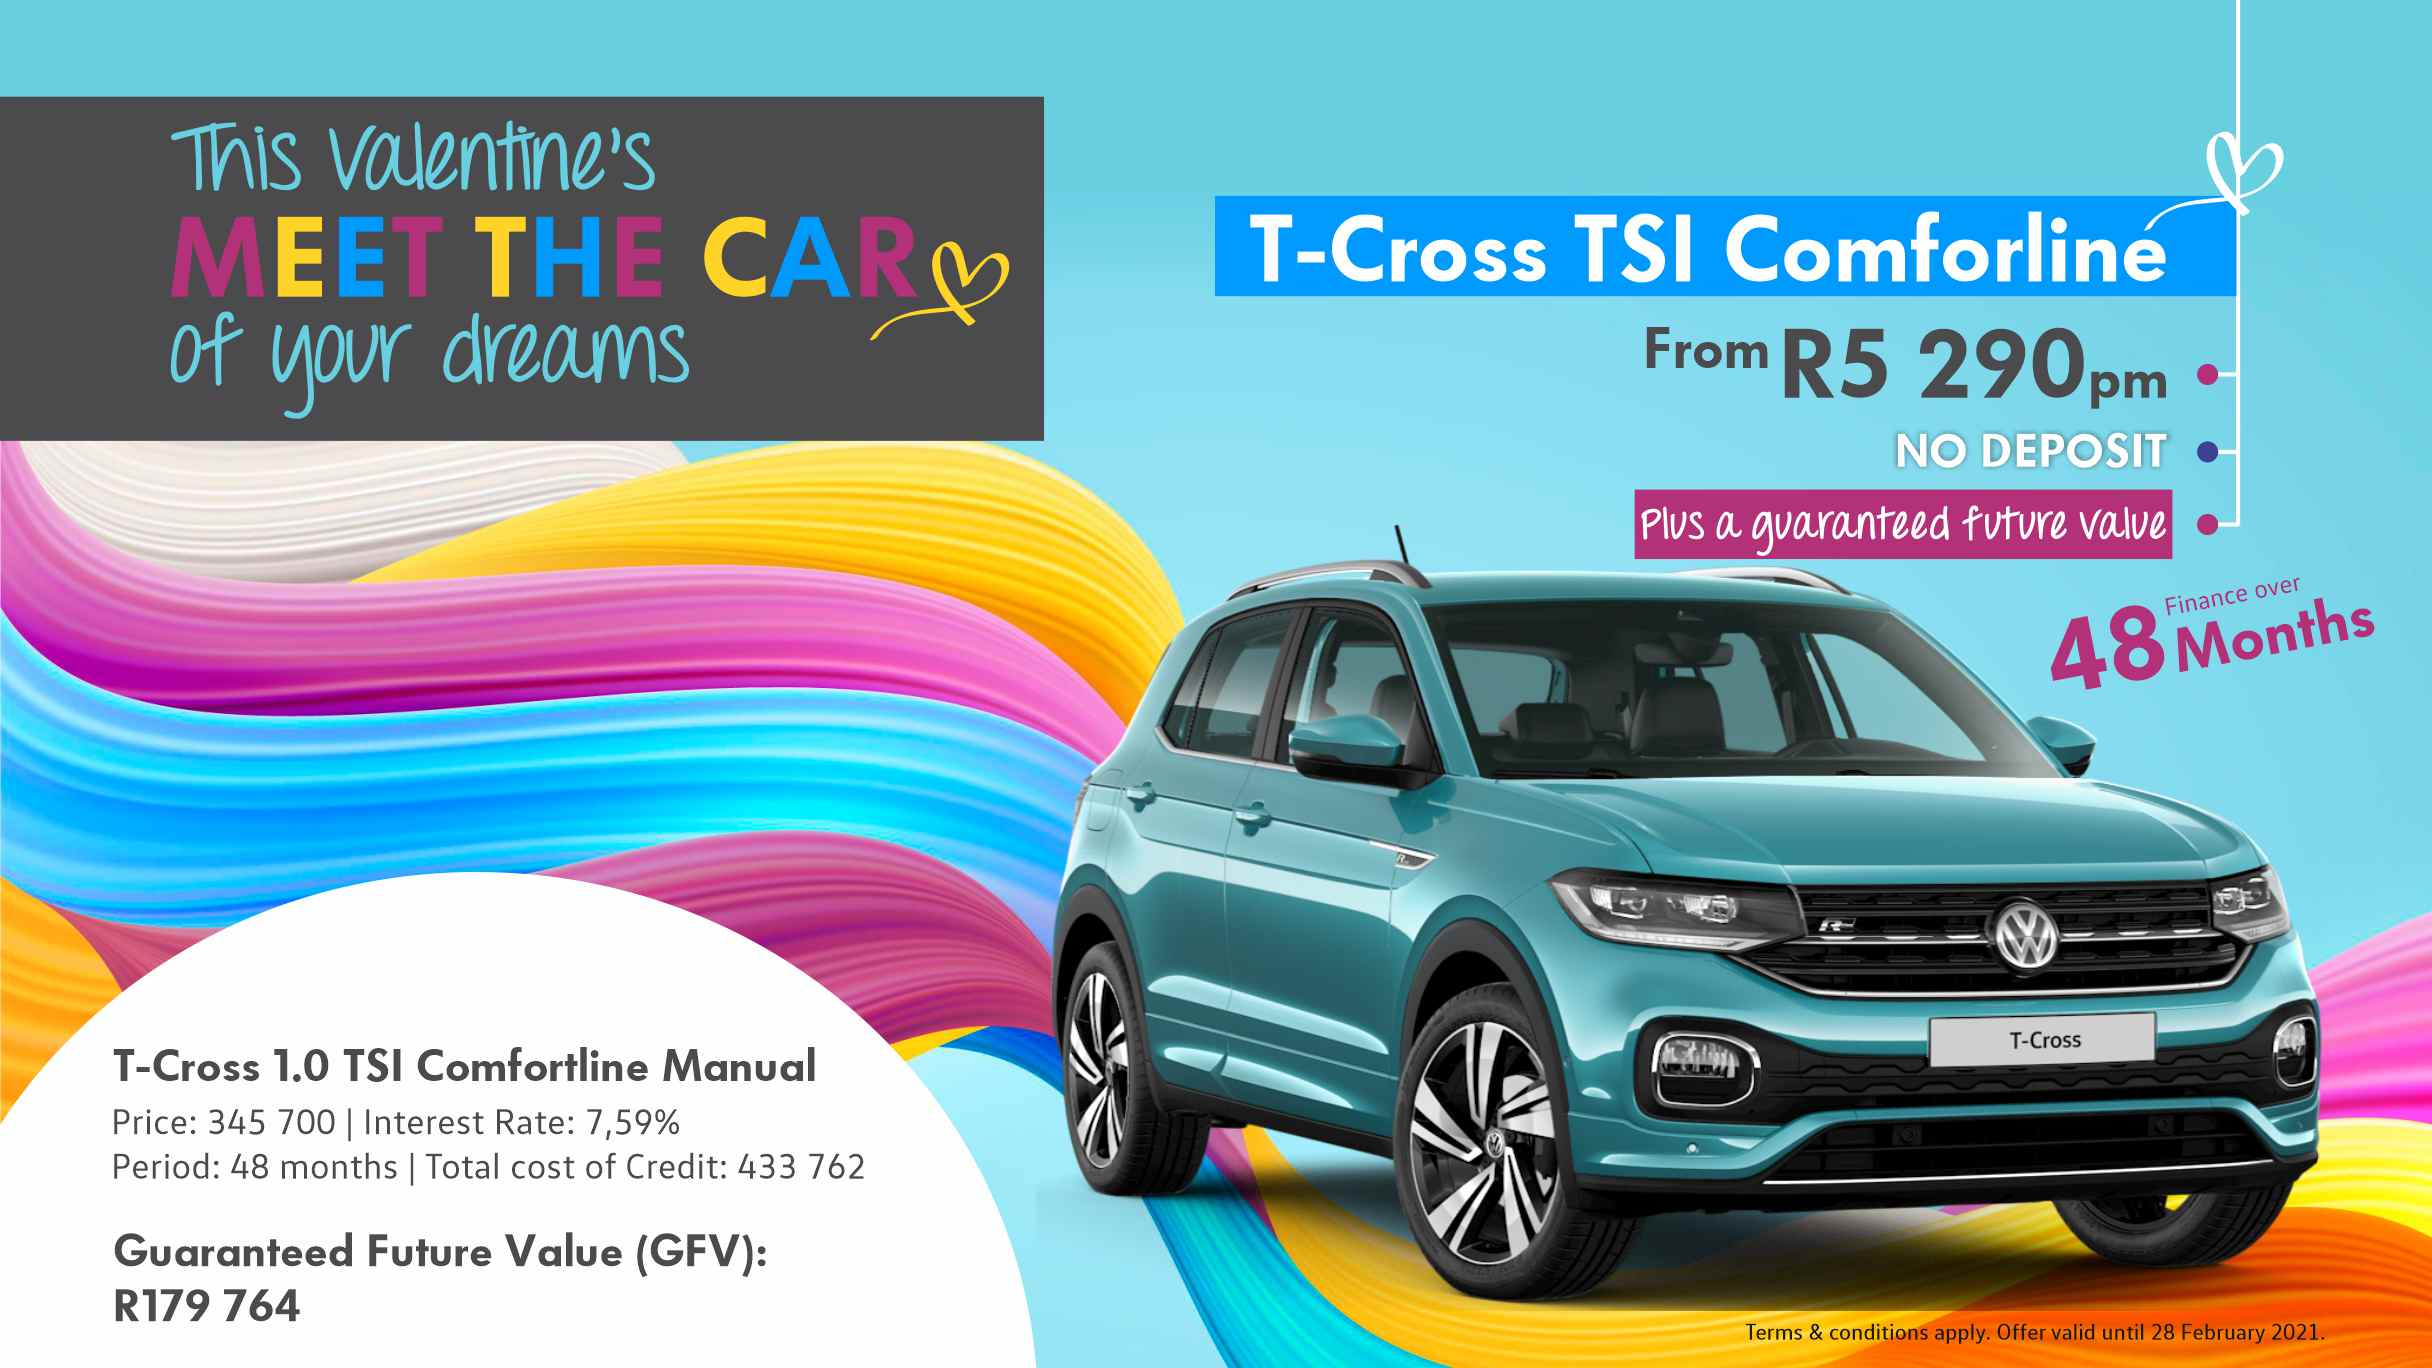 T-Cross special offer at Barons Tokai